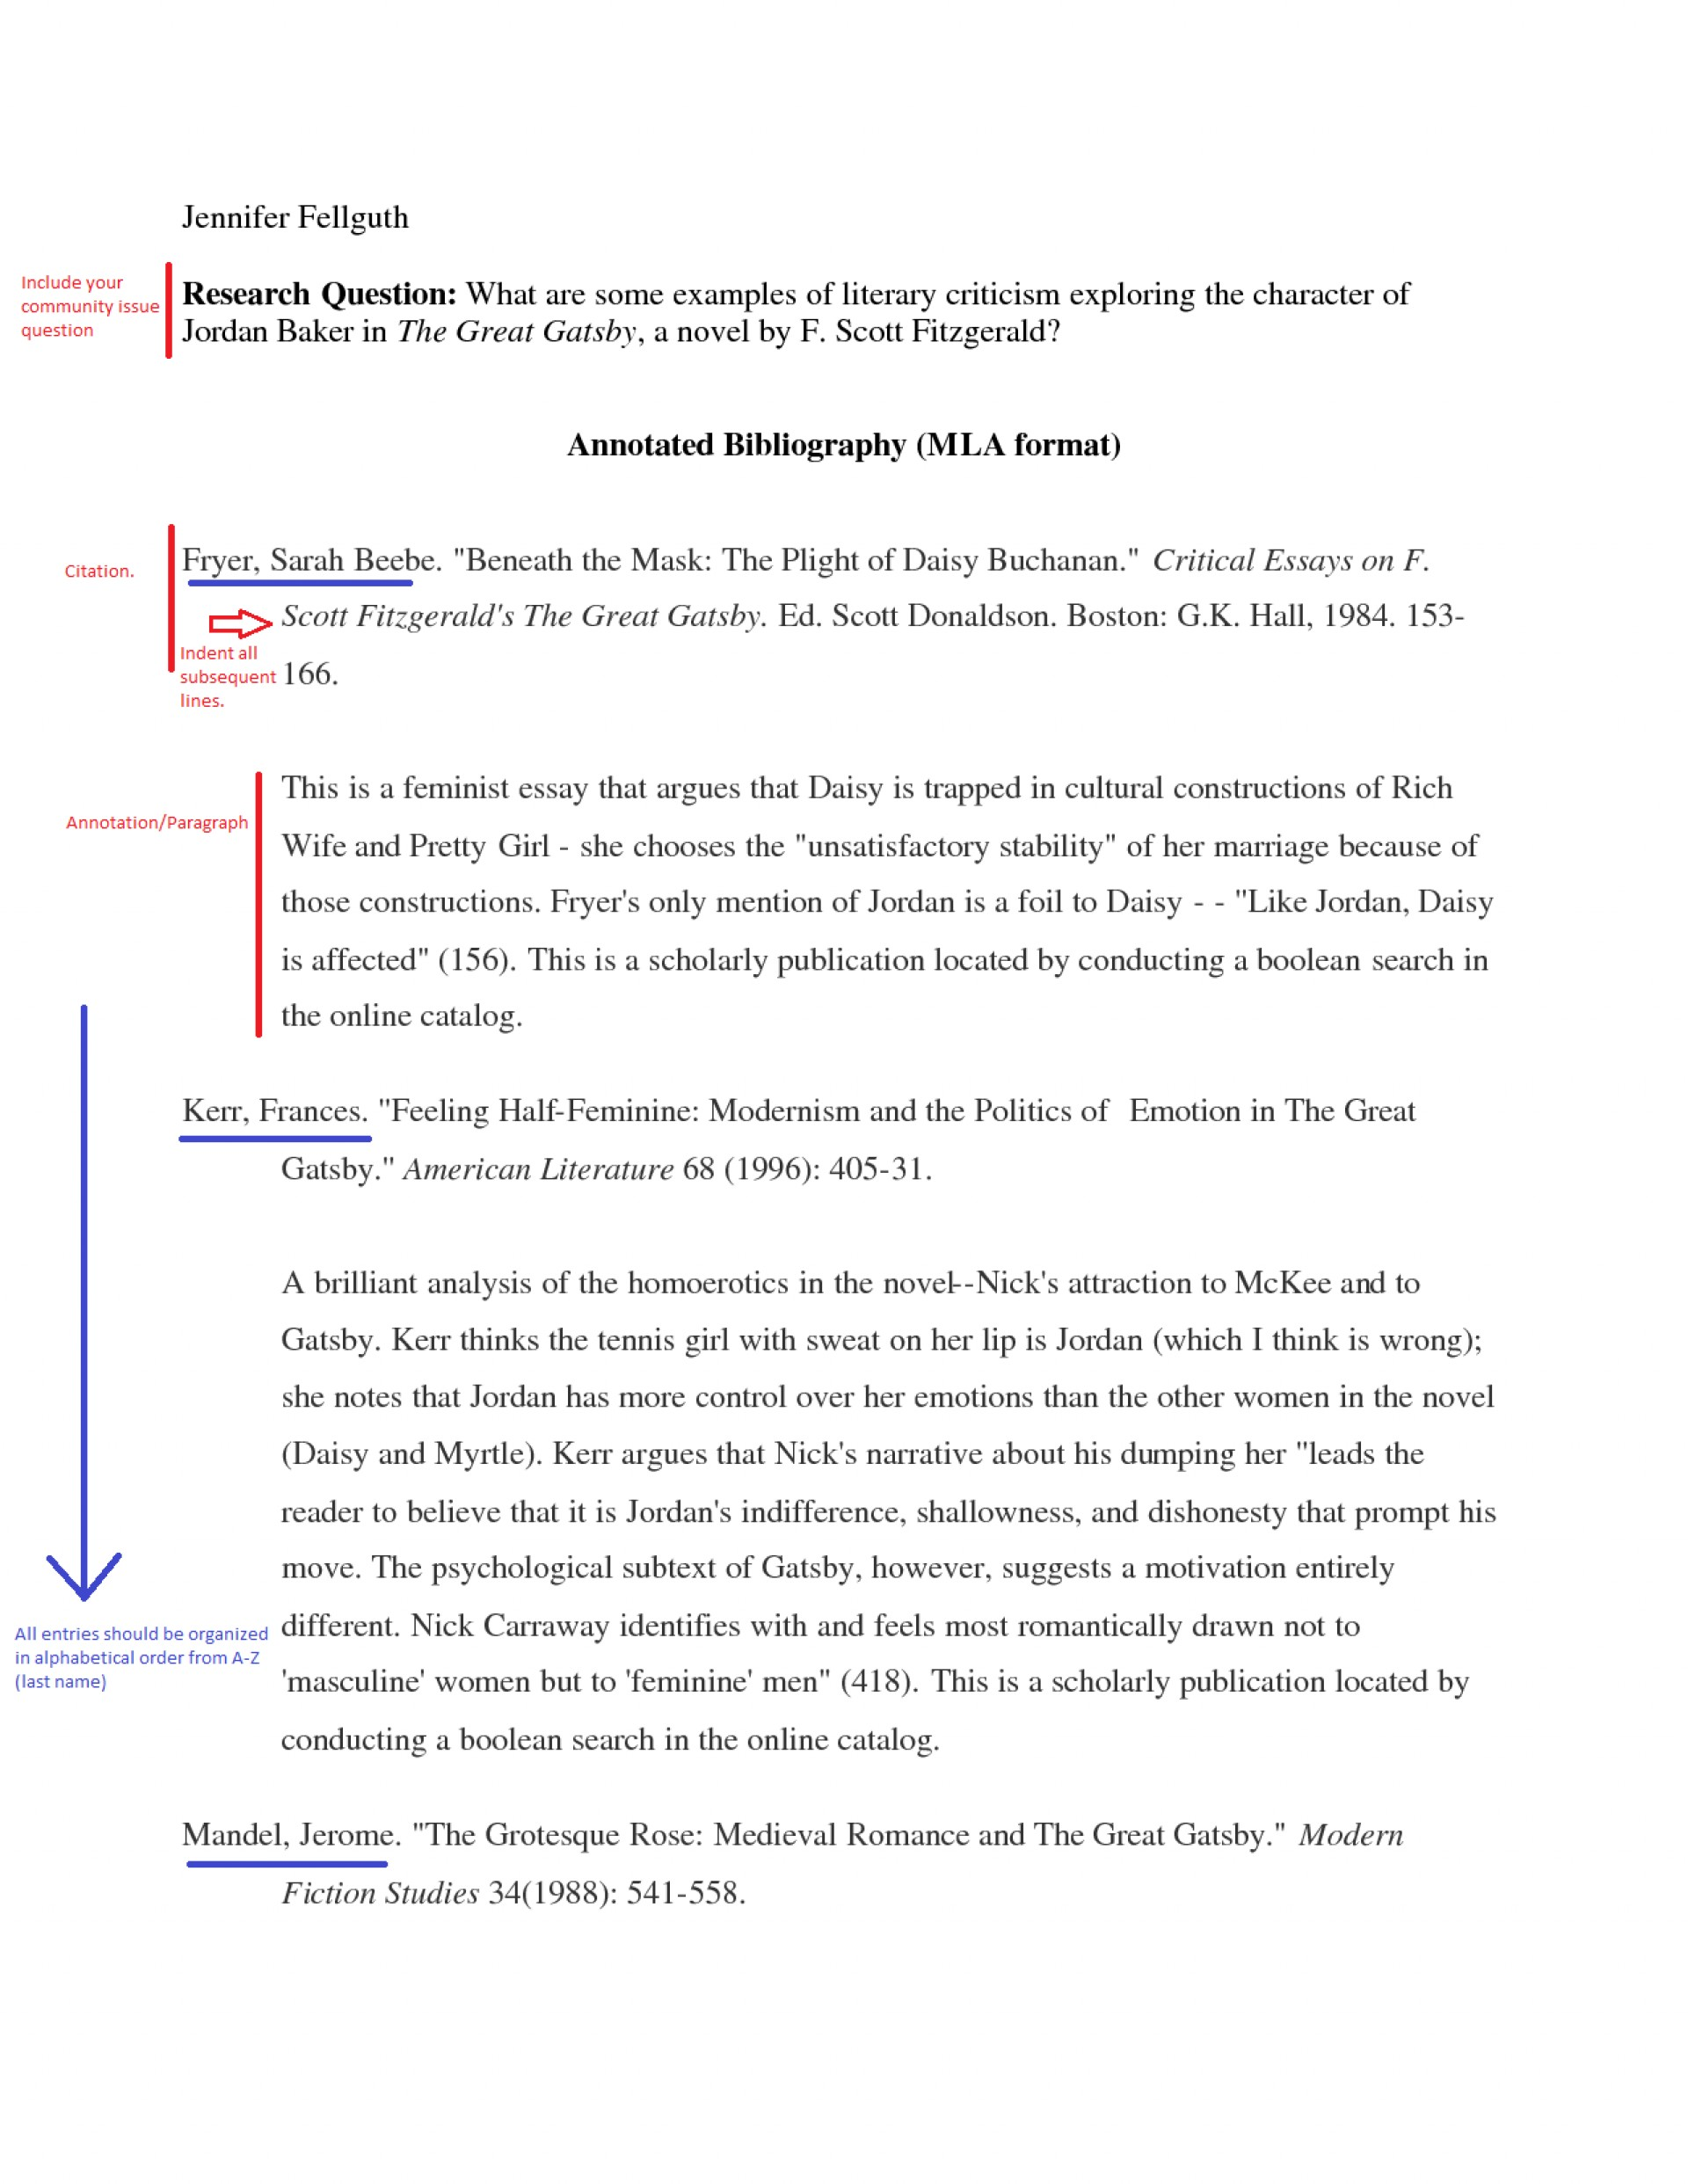 012 Annotatedbibsampleannotated Compare Contrast Essay Outline Impressive And Worksheet Pdf Format 5 Paragraph Point By 1920